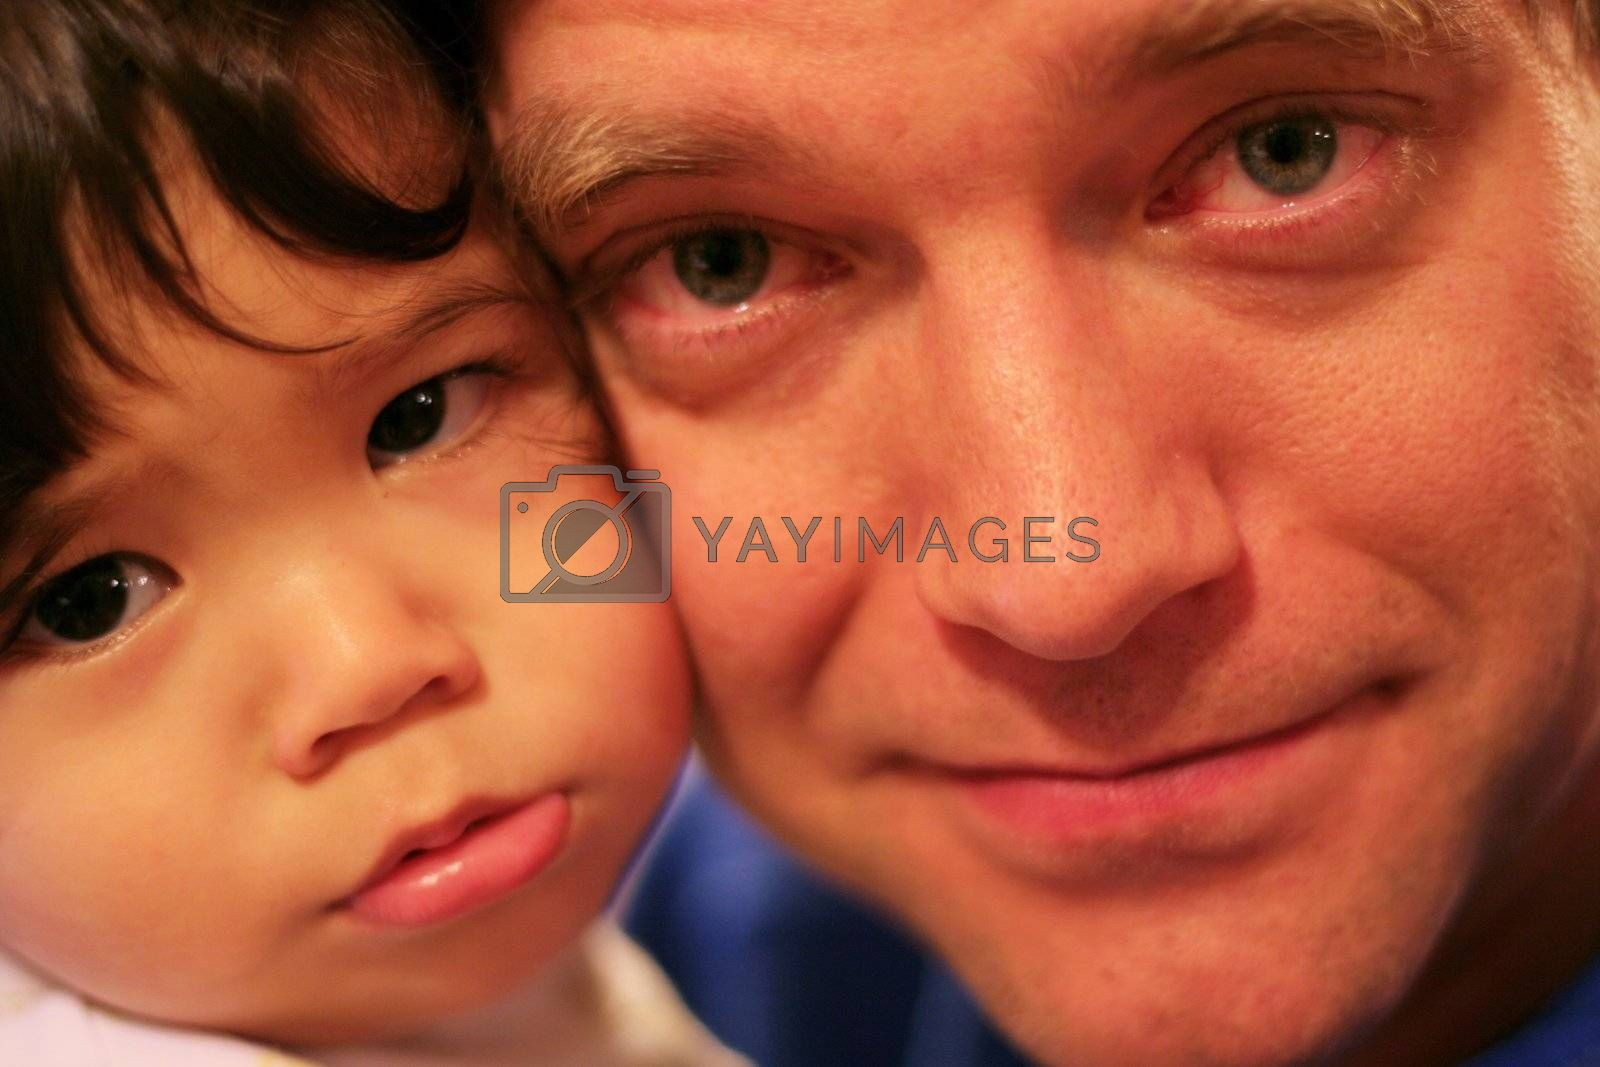 Unhappy baby being comforted by tired father with bloodshot eyes in wee hours of morning.